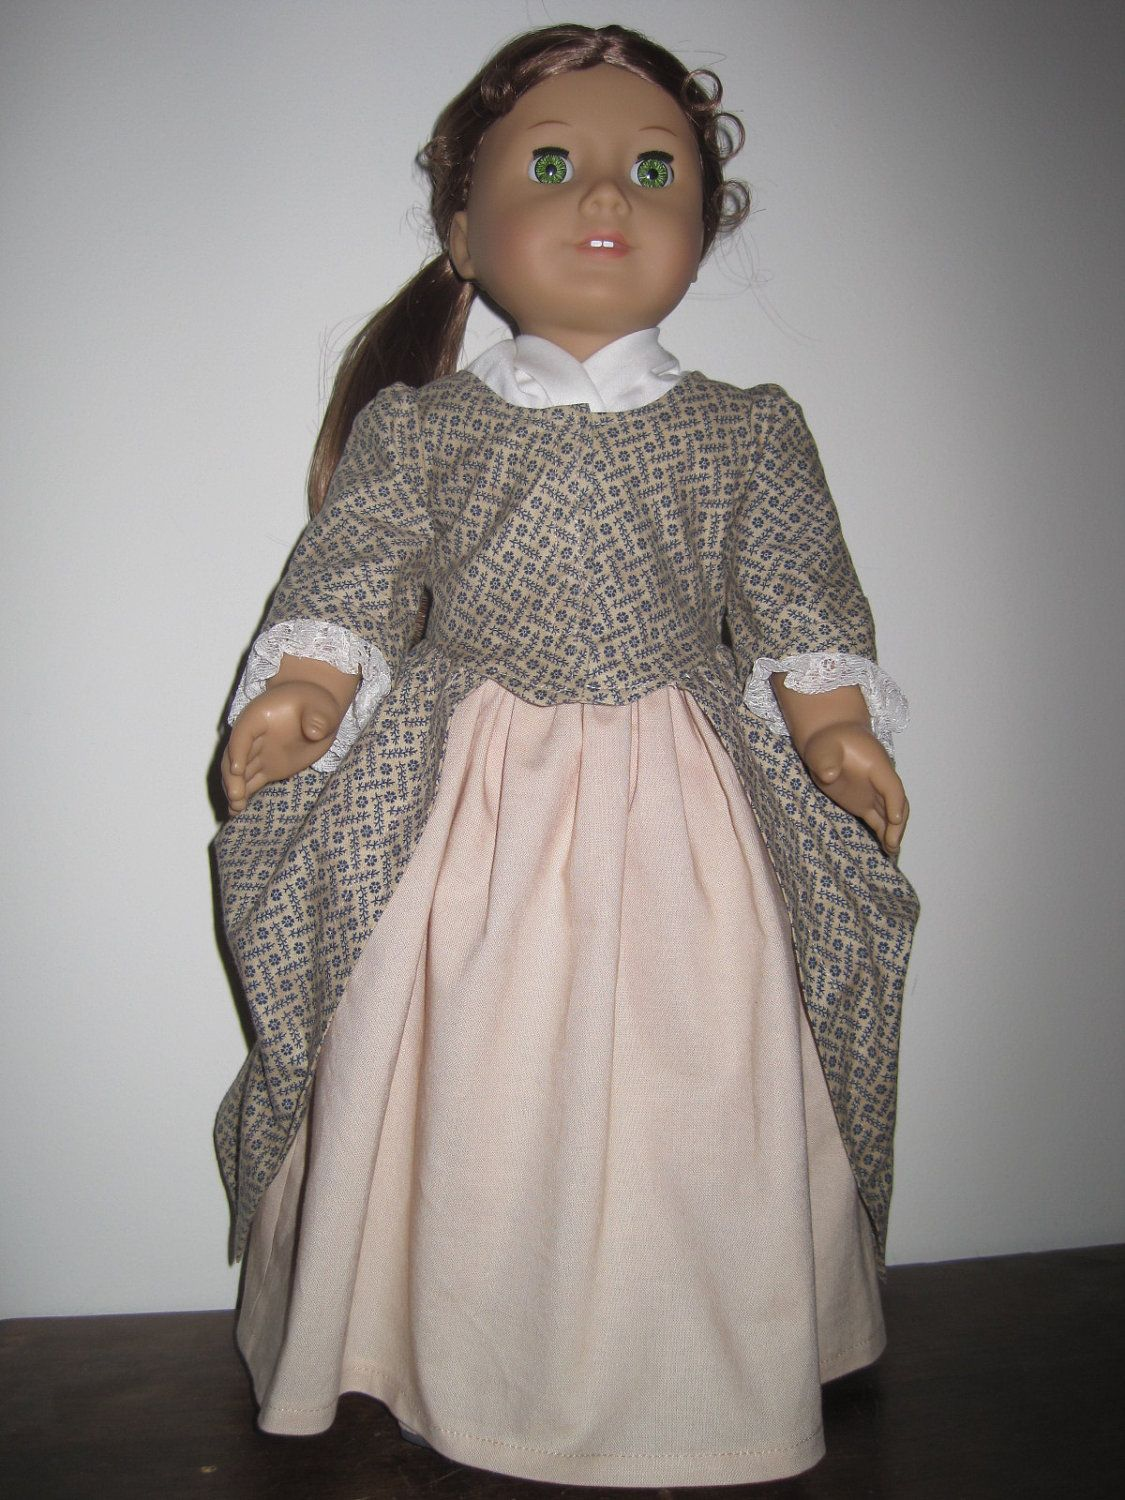 1770's En Forreau Gown for the American Girl and Similar 18 Inch Dolls. $42.00, via Etsy.